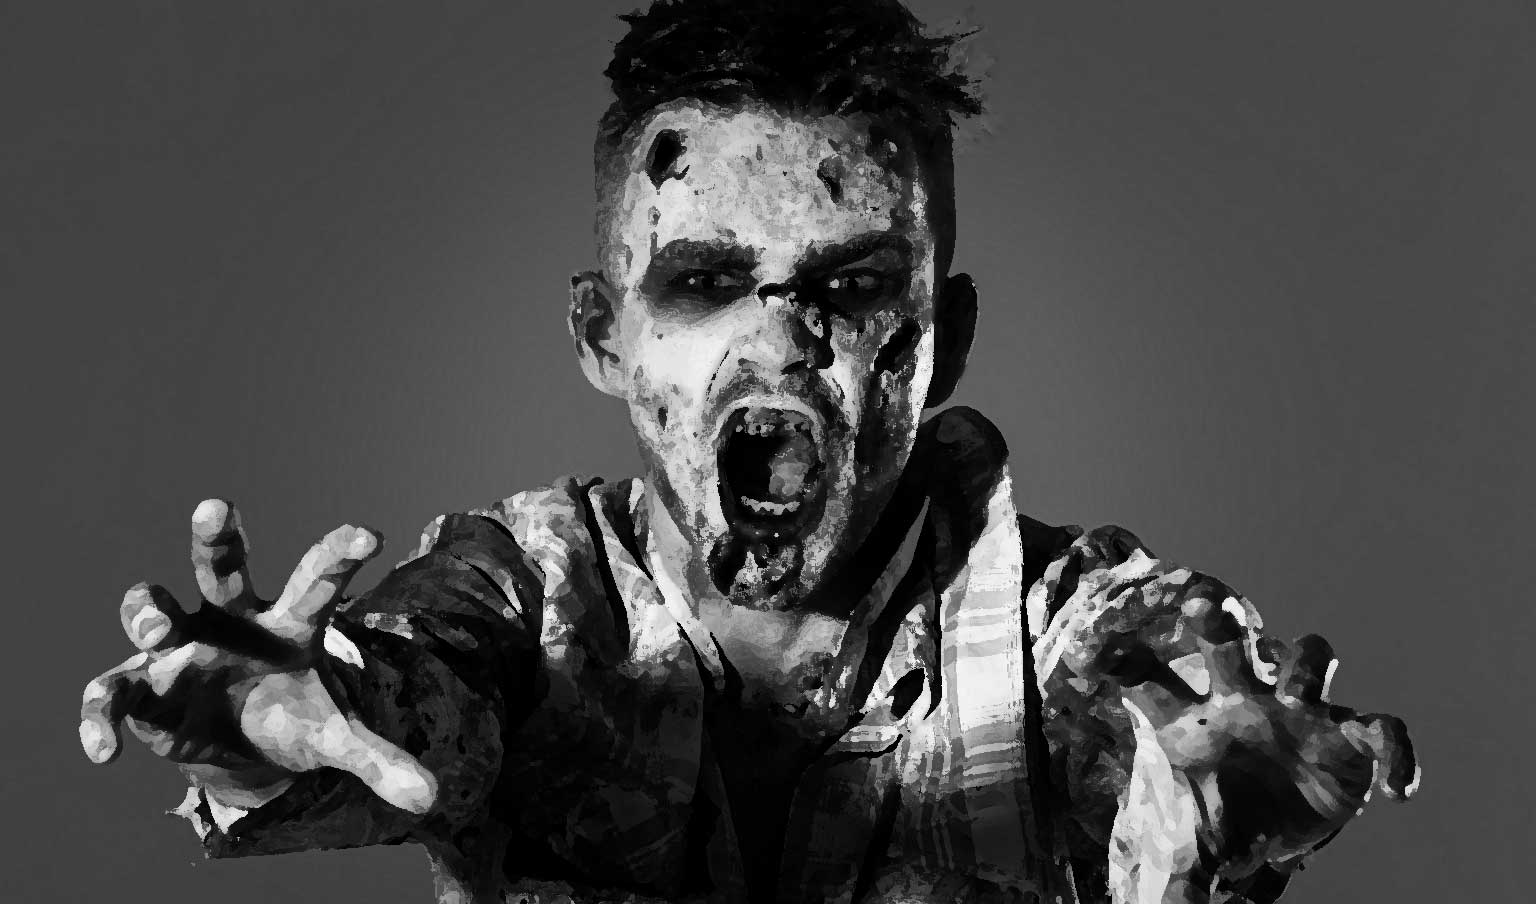 Painted black and white image of a zombie